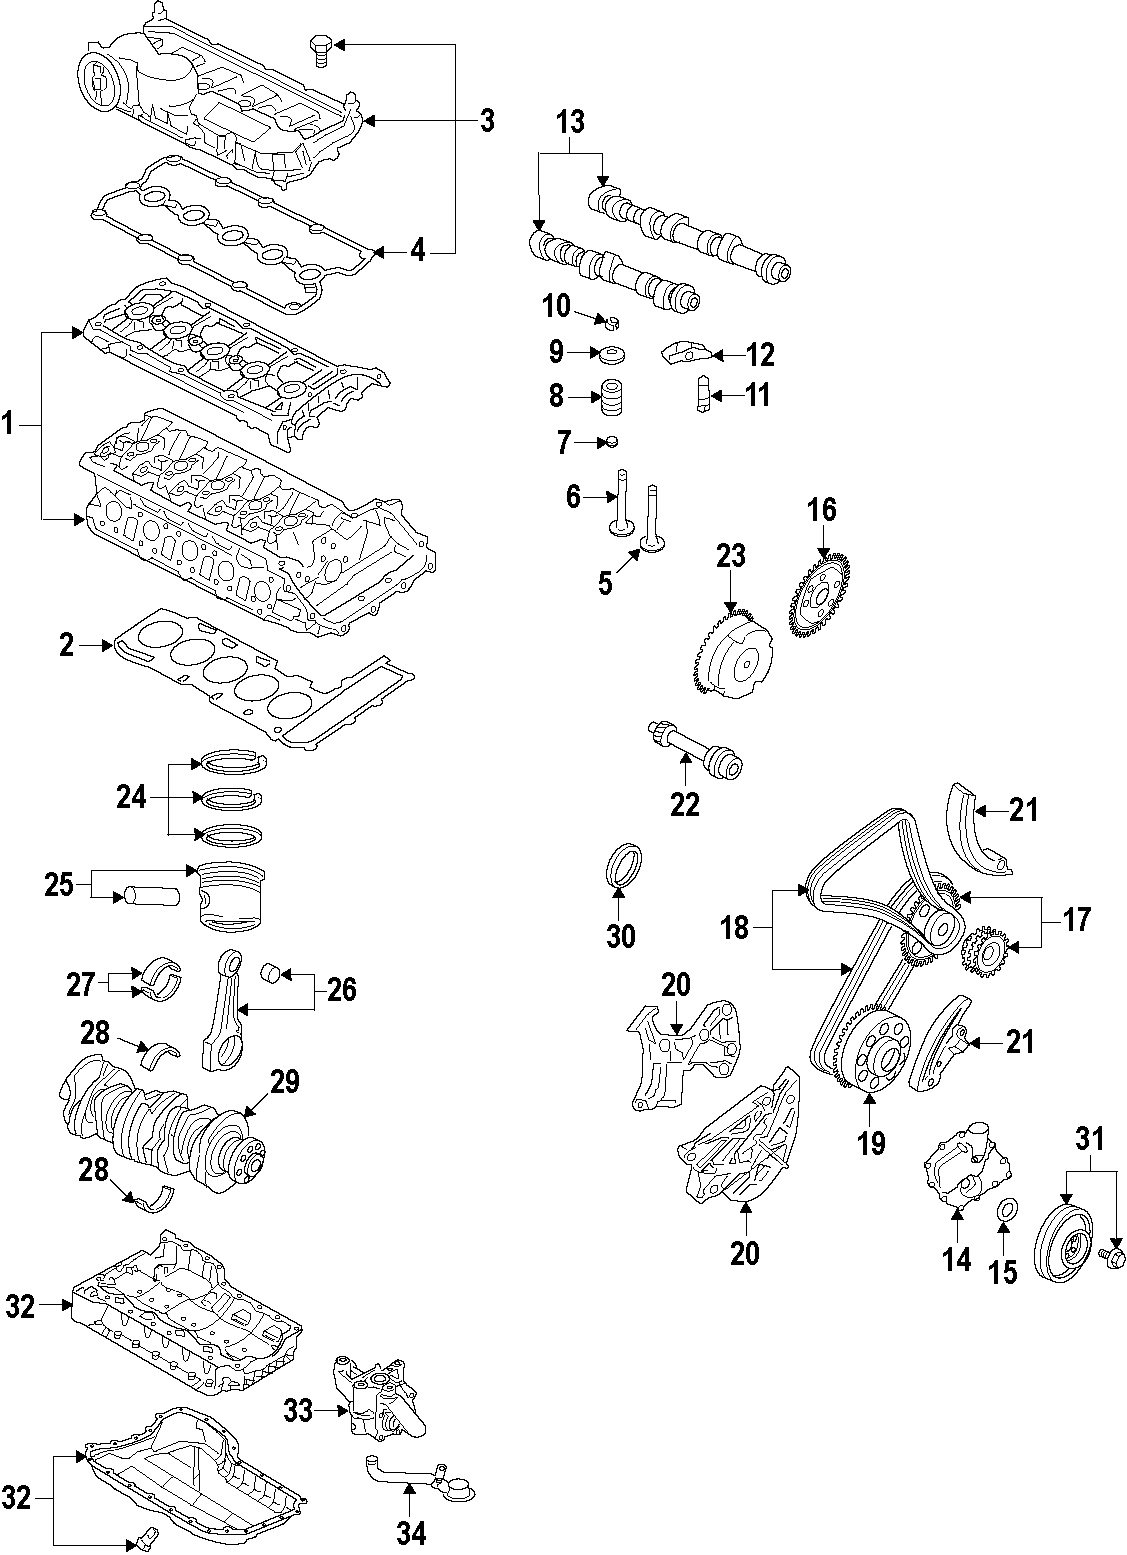 Volkswagen Jetta Engine Timing Chain Guide Lower Right